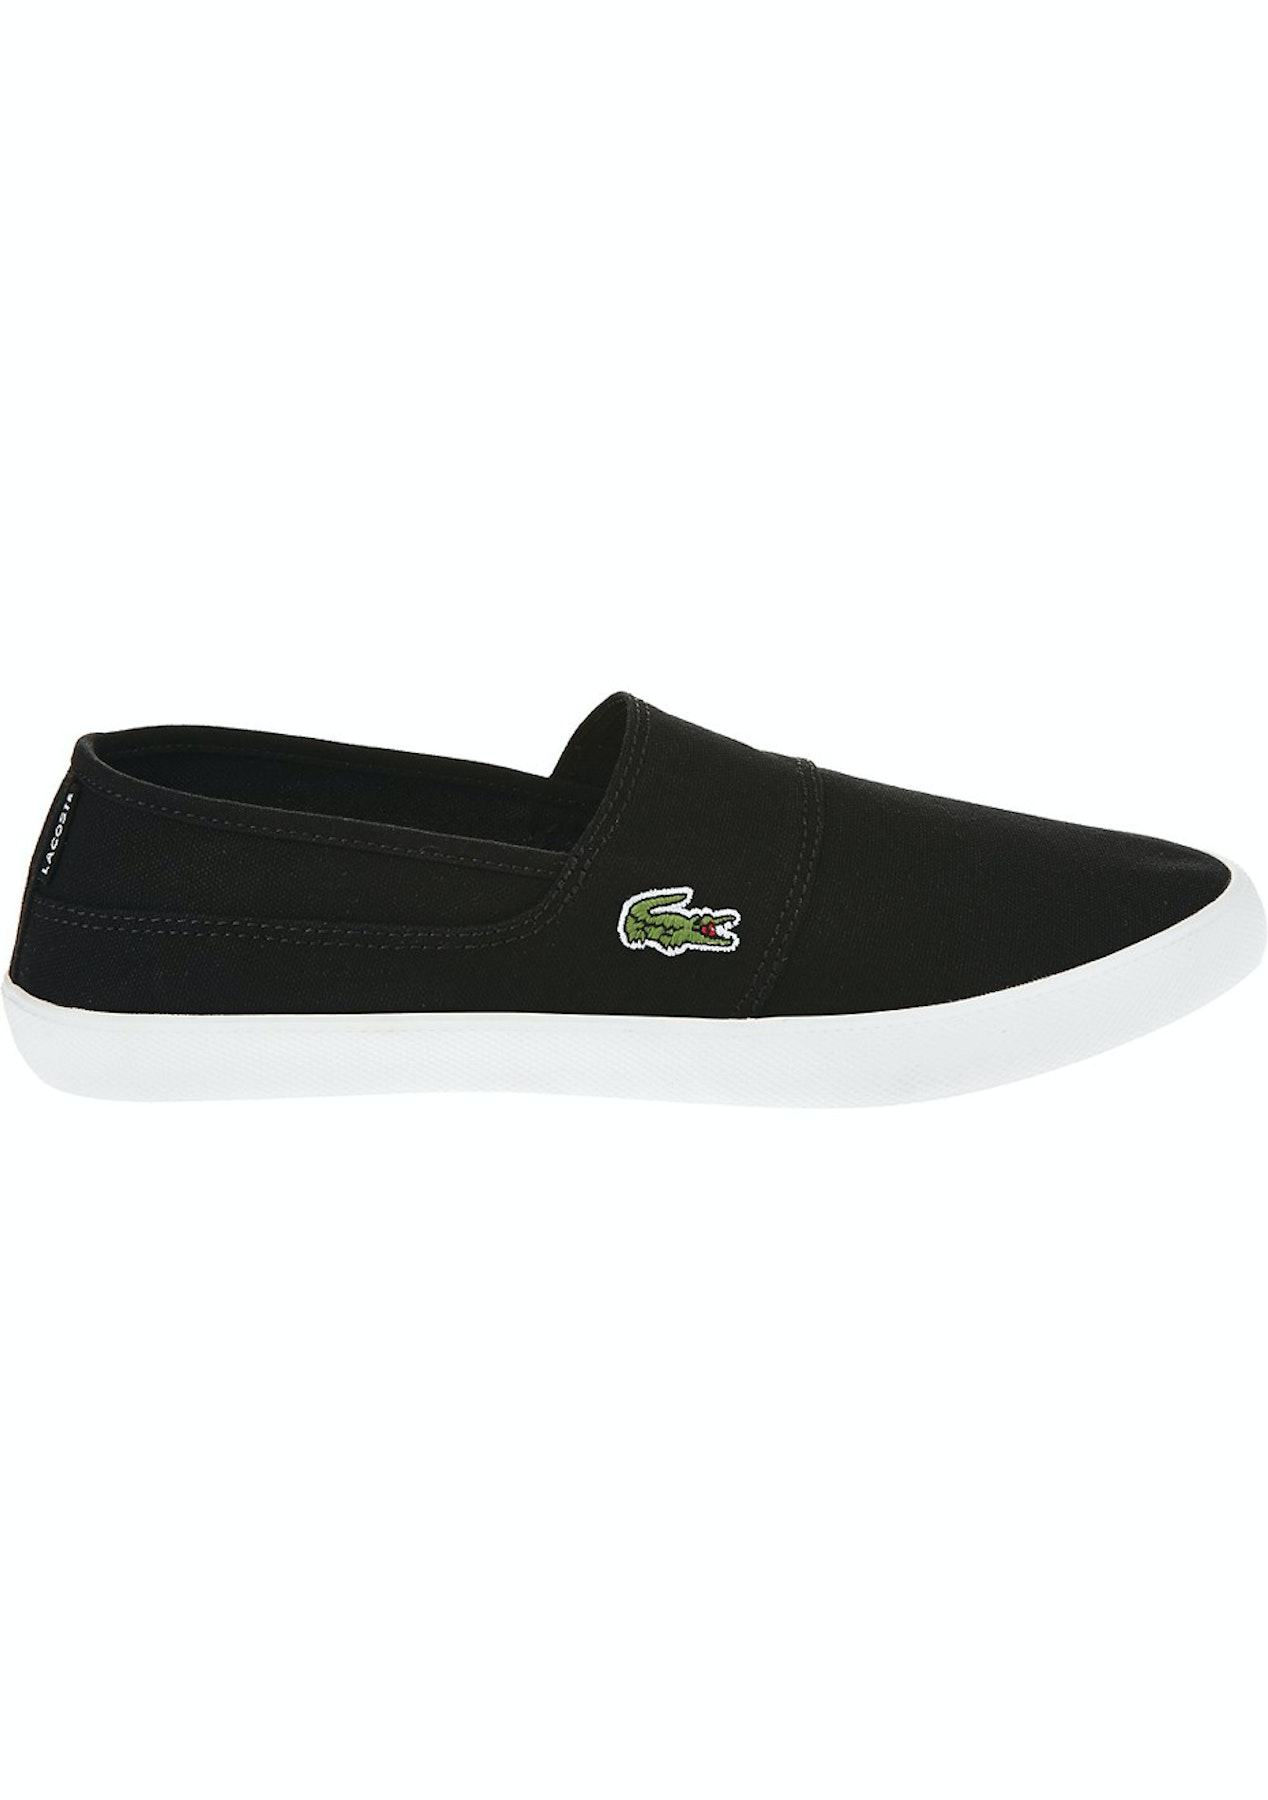 1cb8ca9f9994 Mens Lacoste - Marice Lcr - Black Black - Big Brand Mens Shoes - Onceit